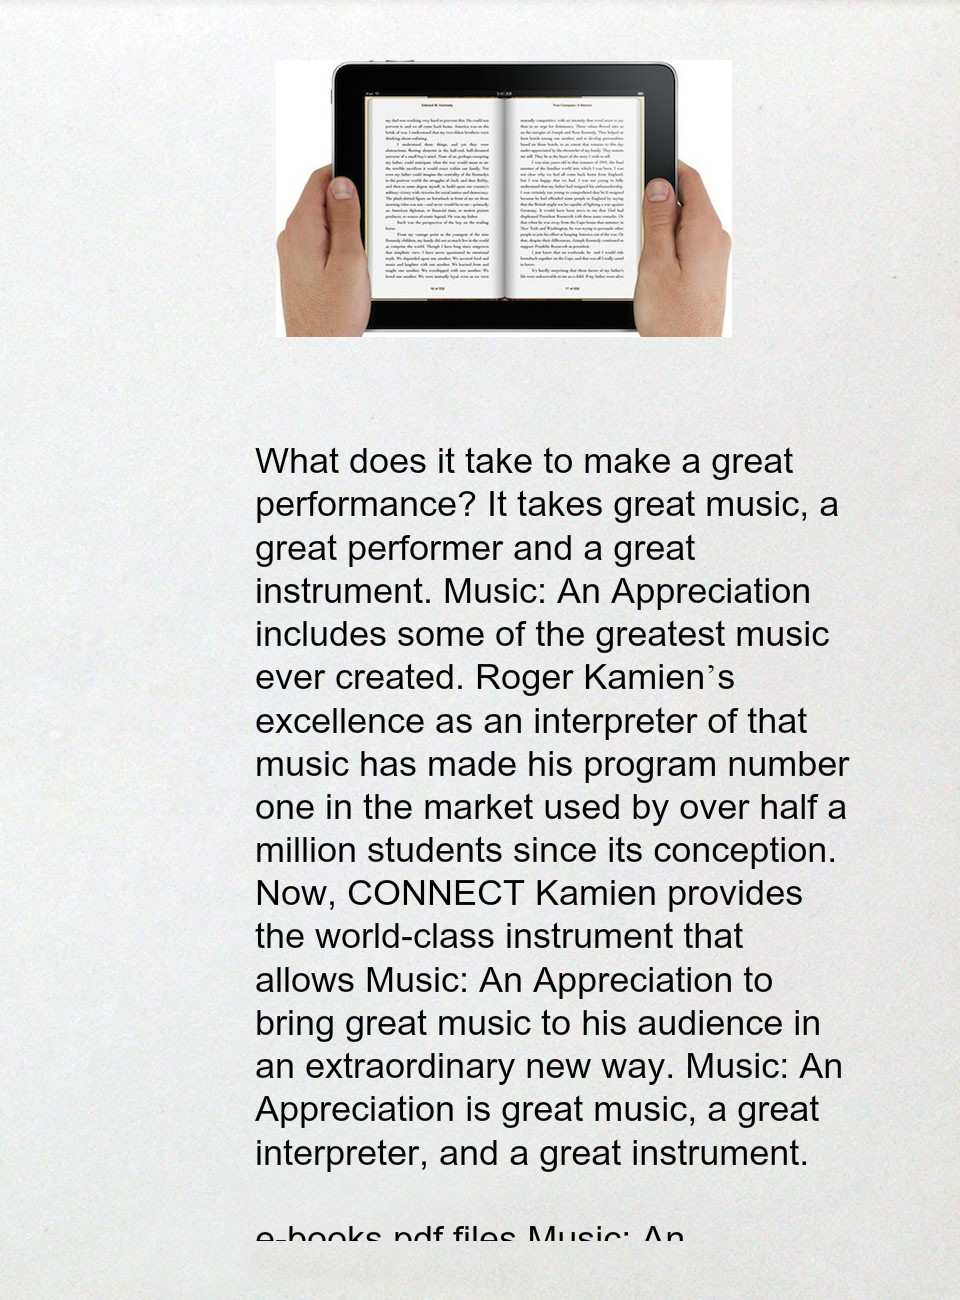 Music an appreciation 7th brief edition by roger kamien pdf epub music an appreciation 7th brief edition by roger kamien pdf epub doc djvu fandeluxe Choice Image